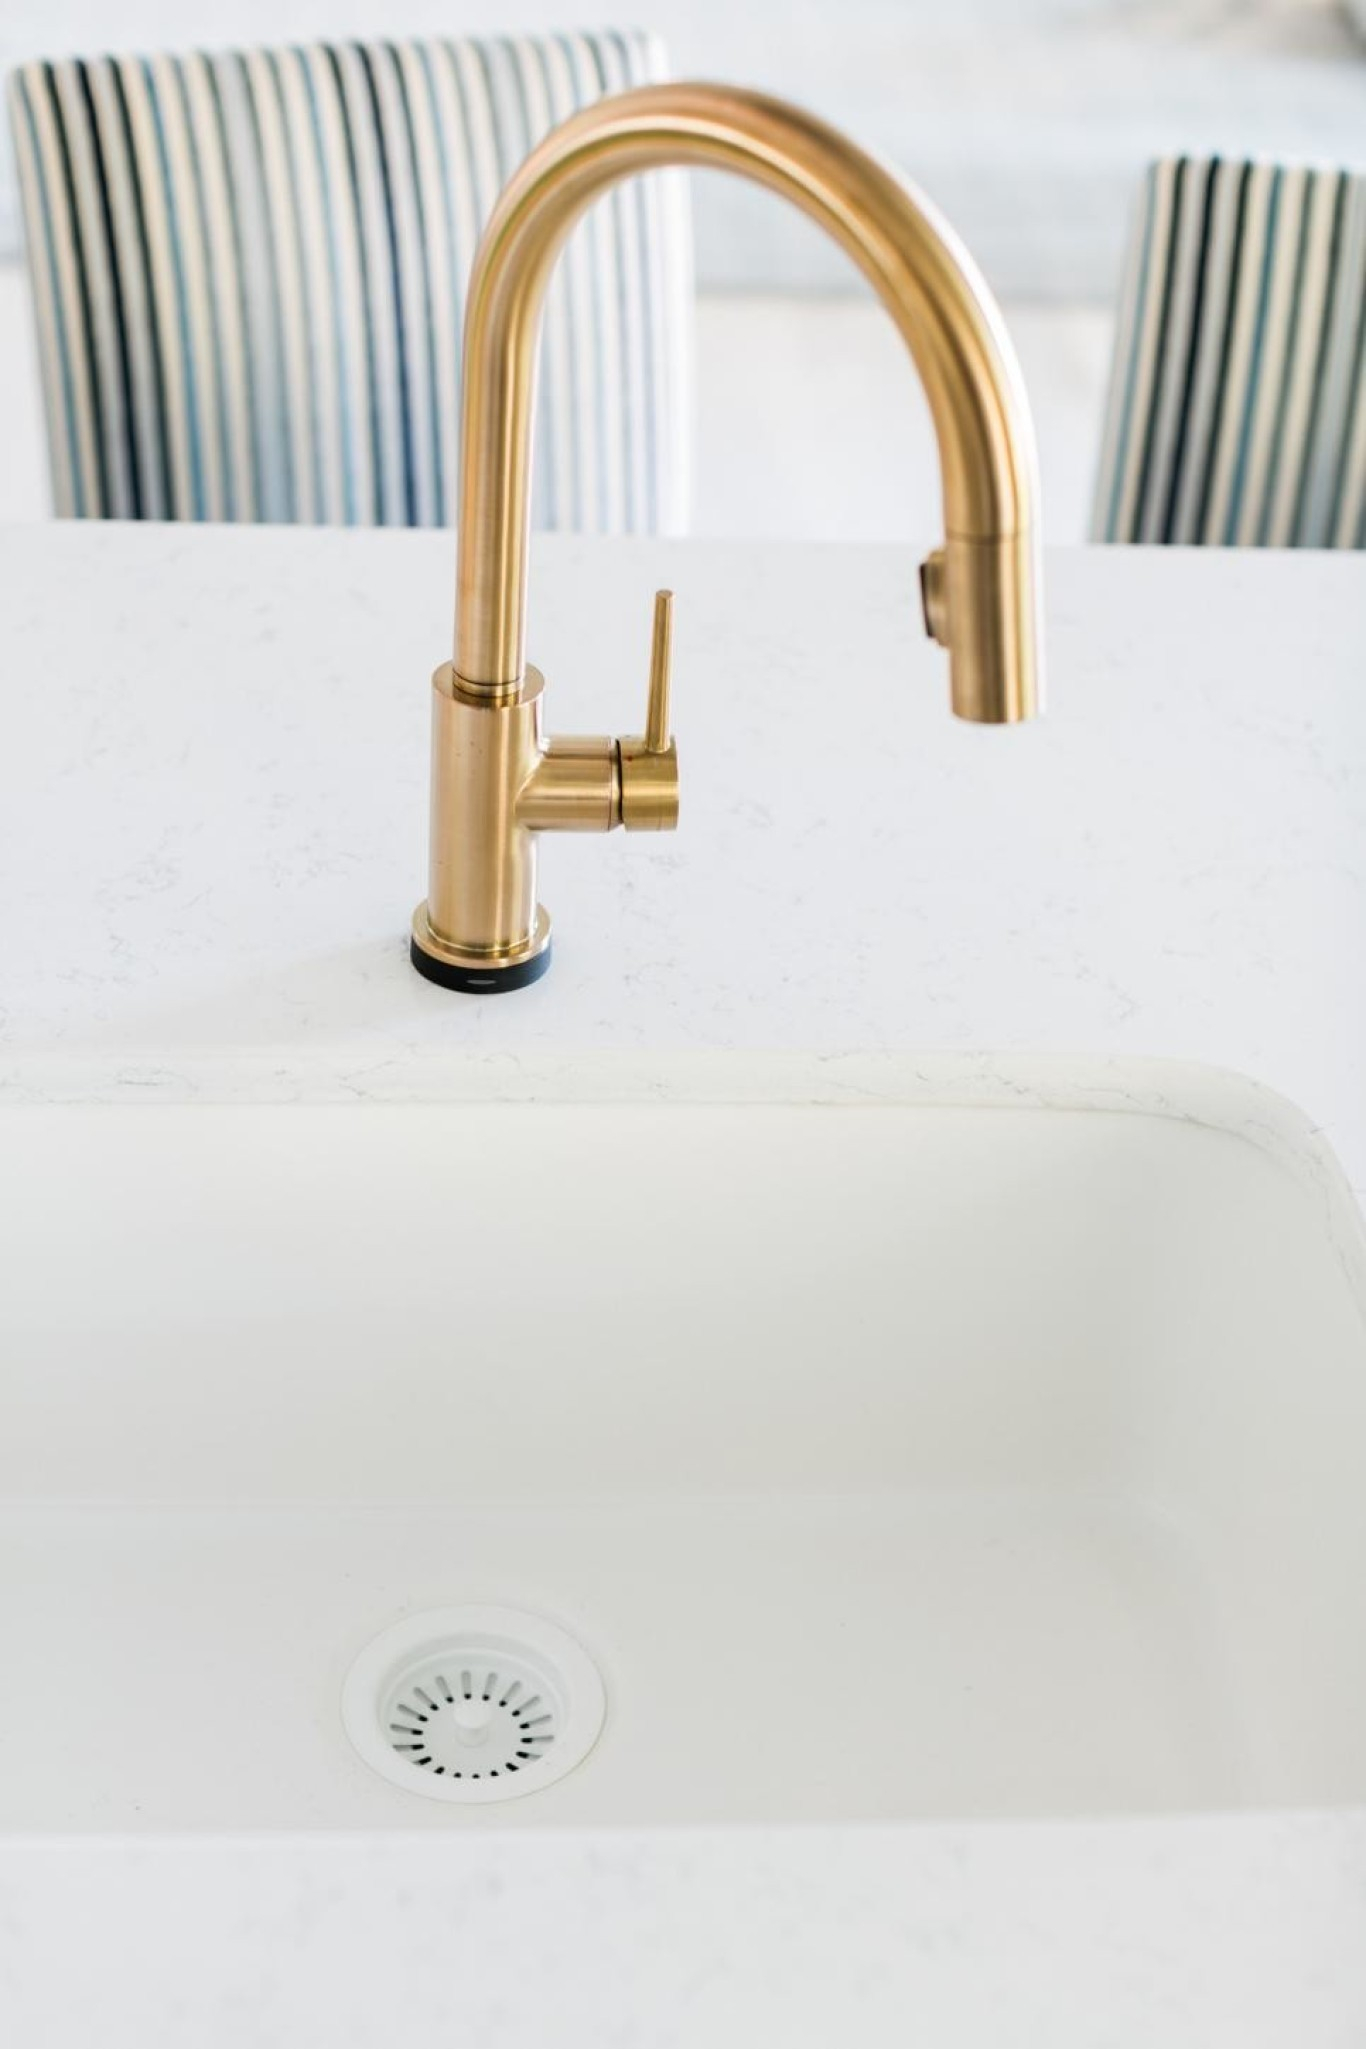 Finest Unlacquered Brass Bathroom Faucet Construction Bathroom inside proportions 1366 X 2049